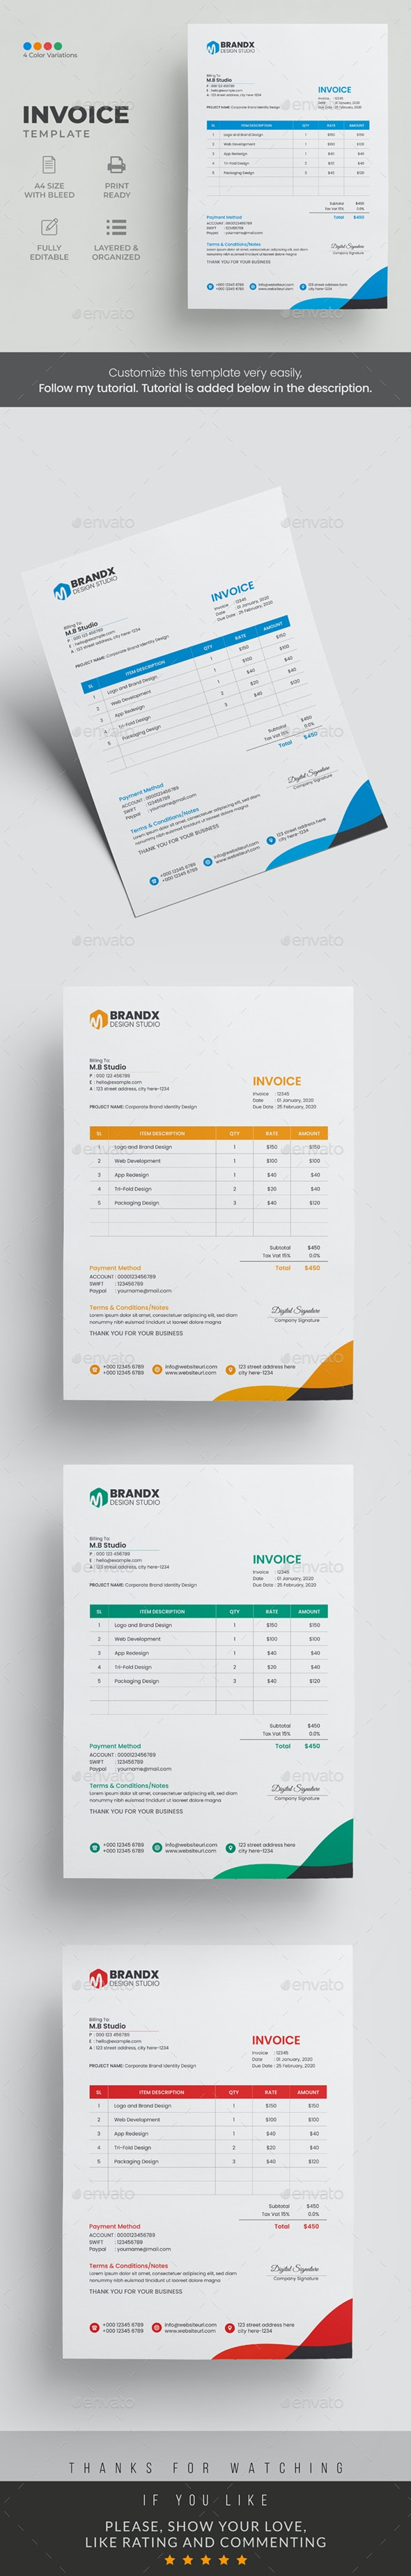 Invoice Template - Stationery Print Templates